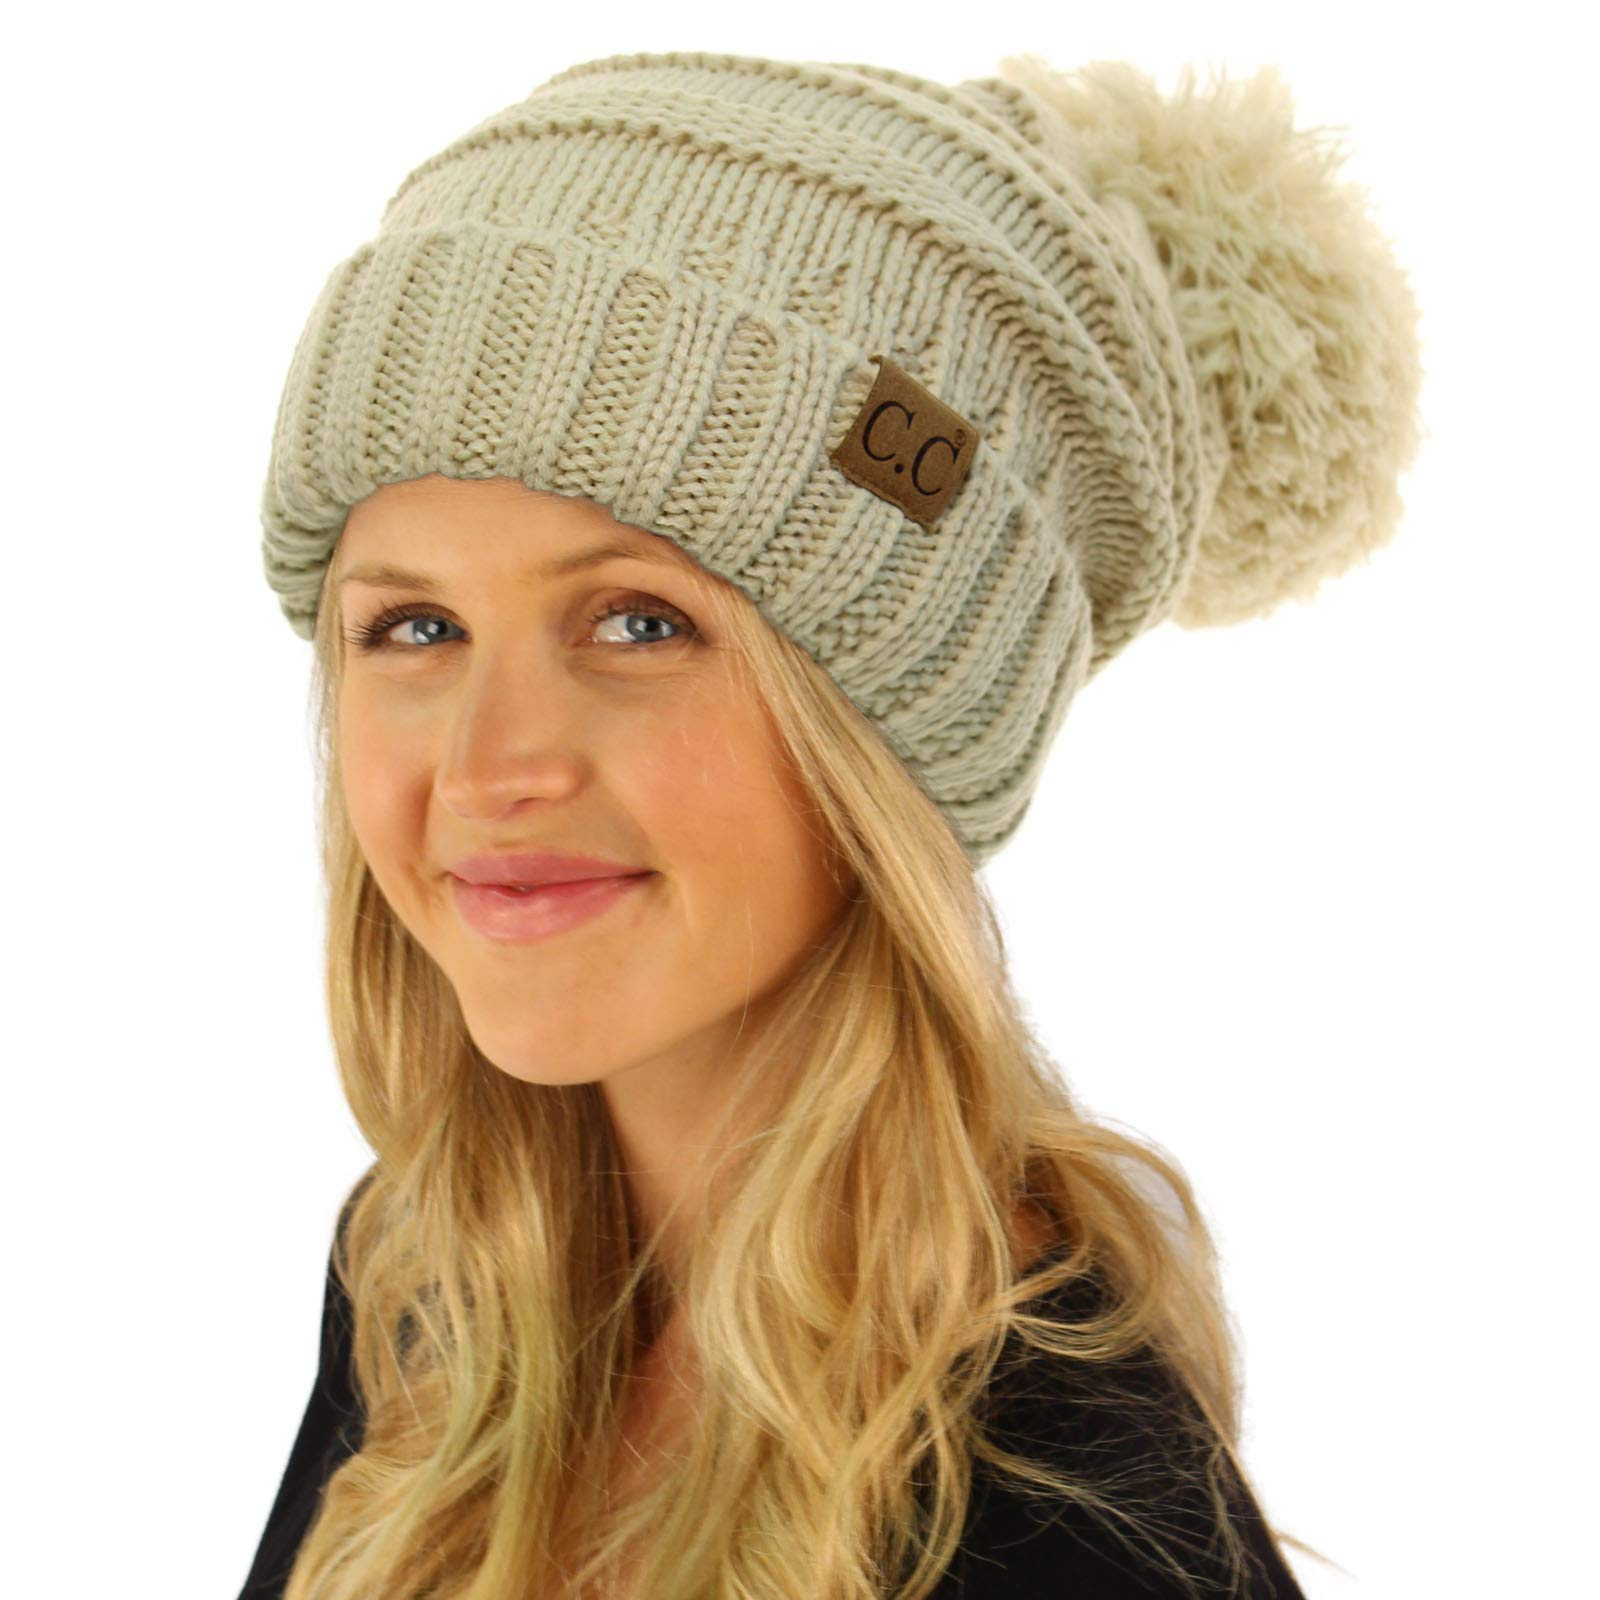 037b9cc1bec Oversized Super Big Slouchy Pom Pom Warm Chunky Stretchy Knit Beanie Hat  Solid Beige   Skullies   Beanies   Clothing